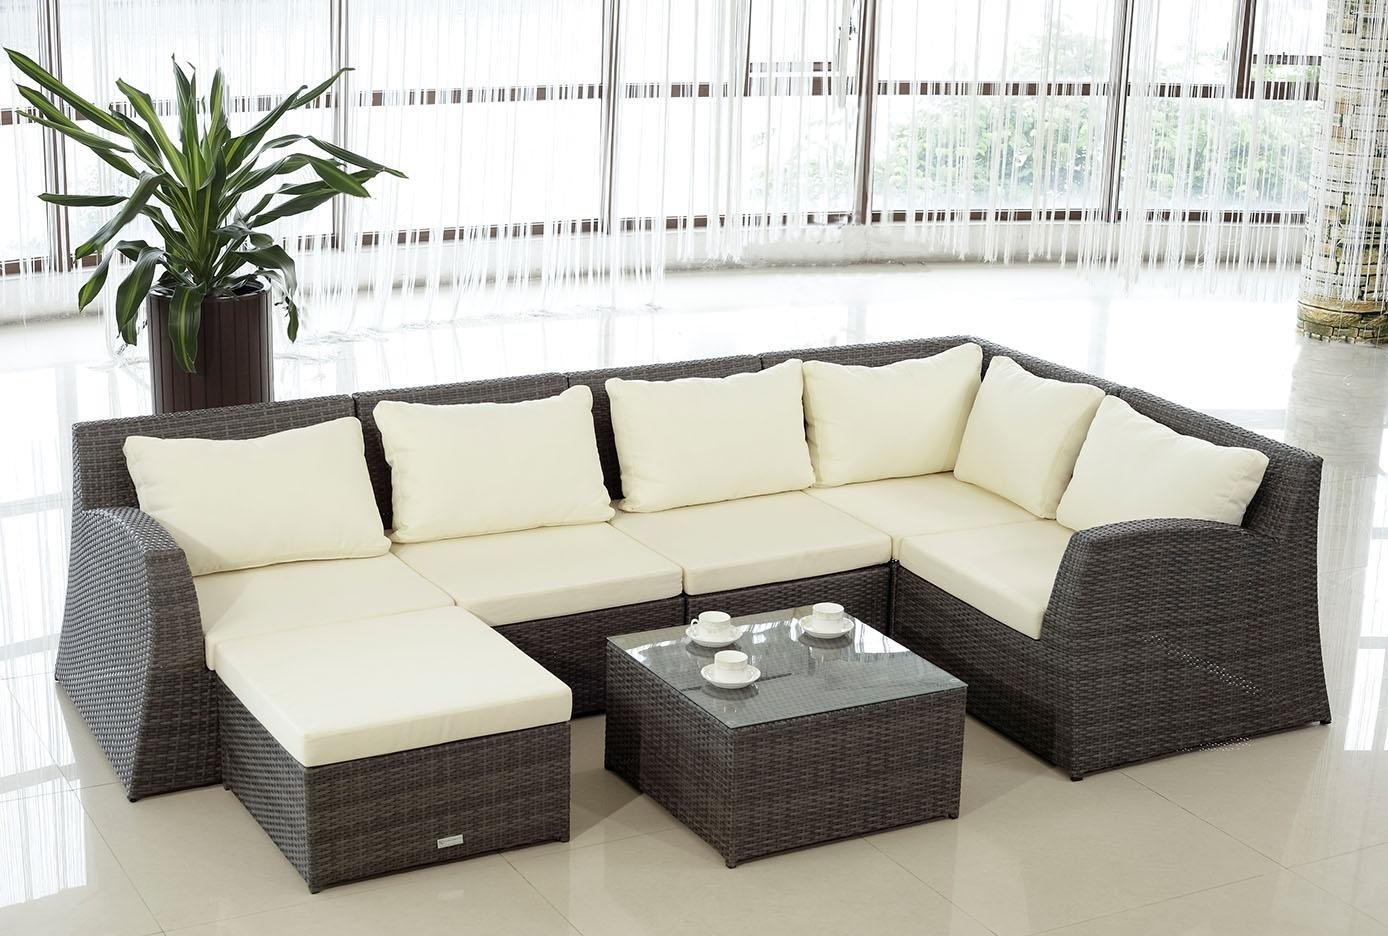 23 Ideas of Modern Rattan Sofas | Sofa Ideas